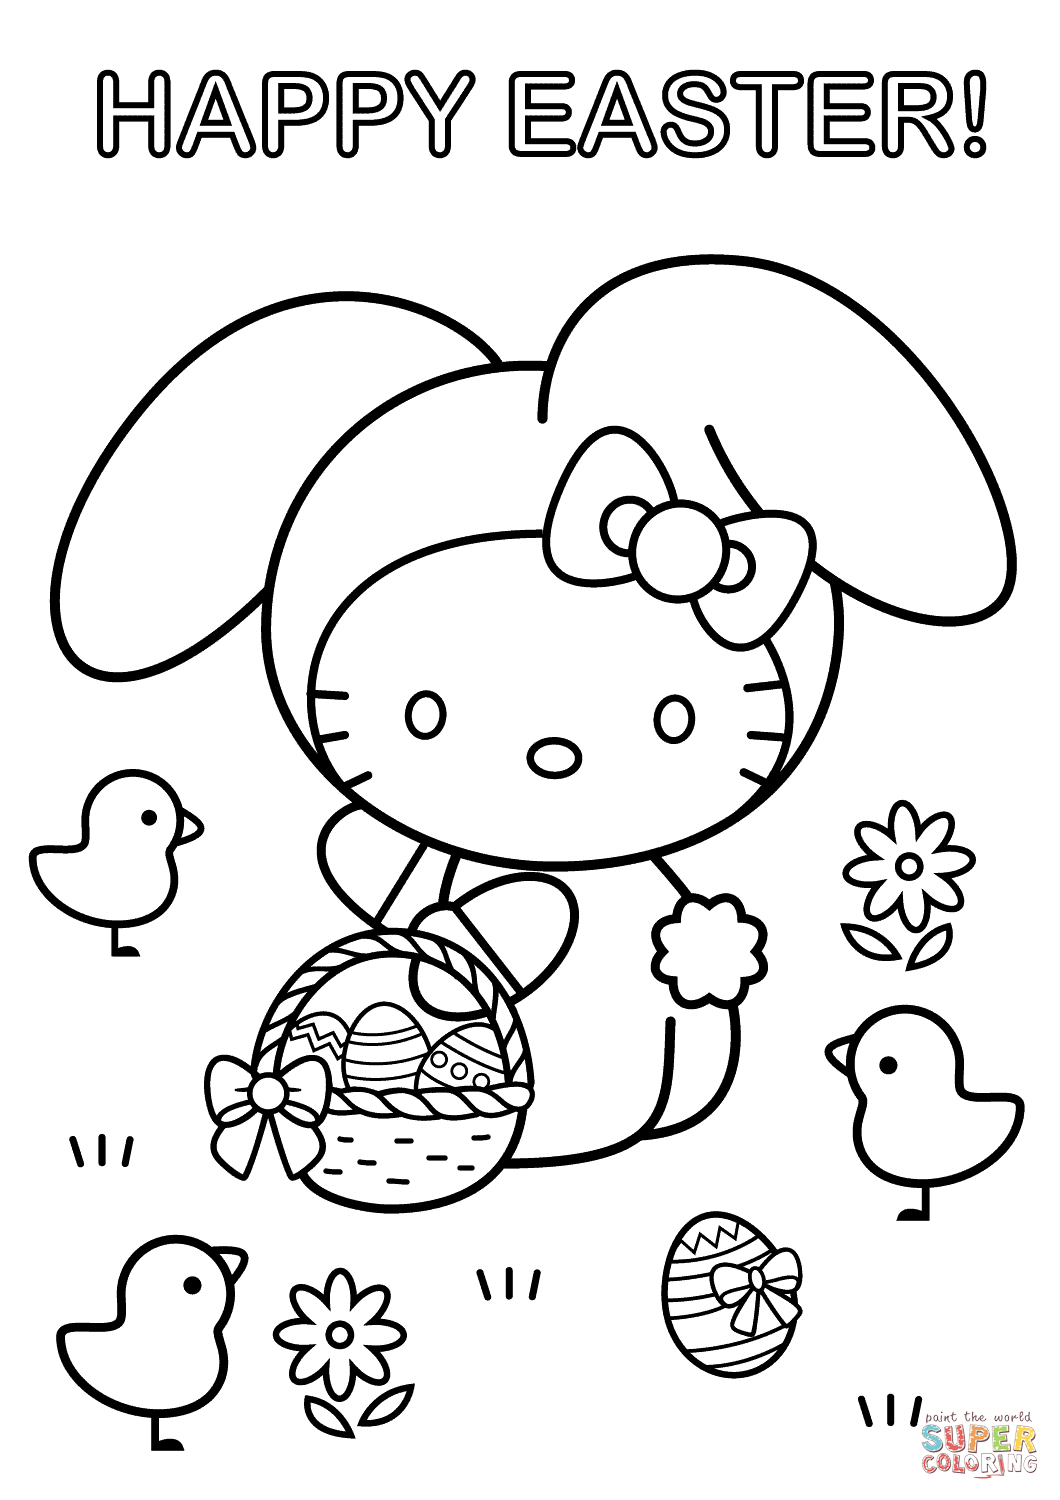 free easter coloring pages paw patrol easter coloring pages at getcoloringscom coloring pages easter free